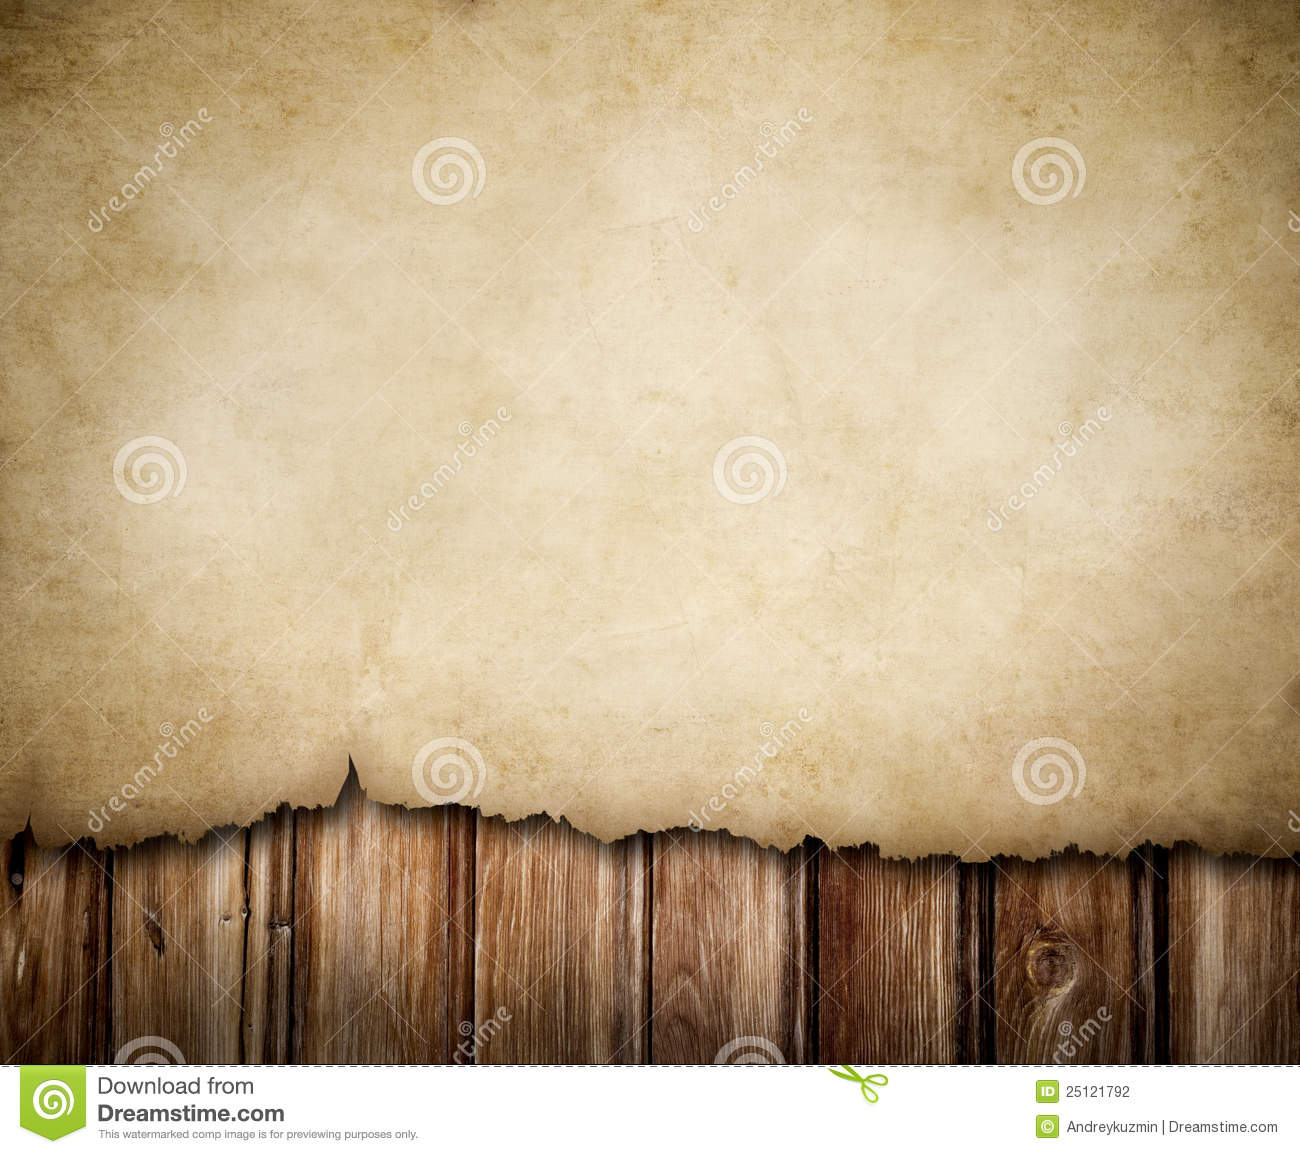 Grunge Paper Notice On Wooden Wall Background Stock